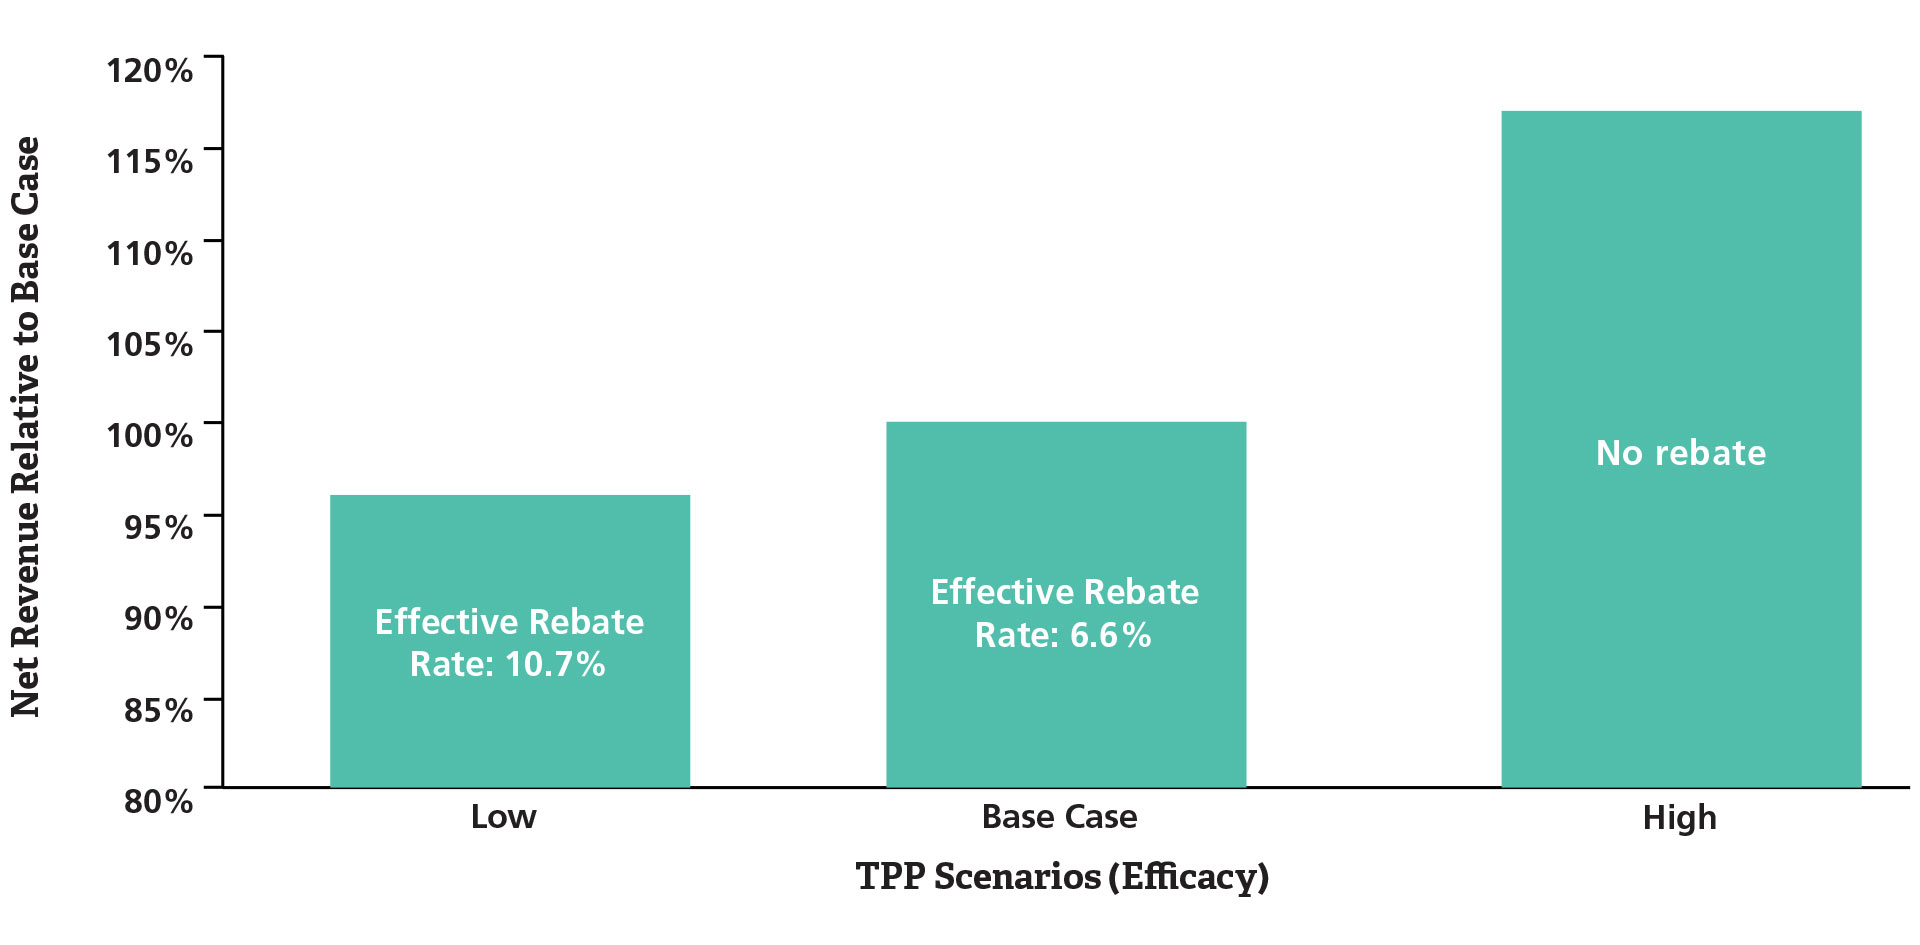 Figure 2. Potential Net Revenue Impact of Risk Sharing under Varying Clinical TPP Scenarios